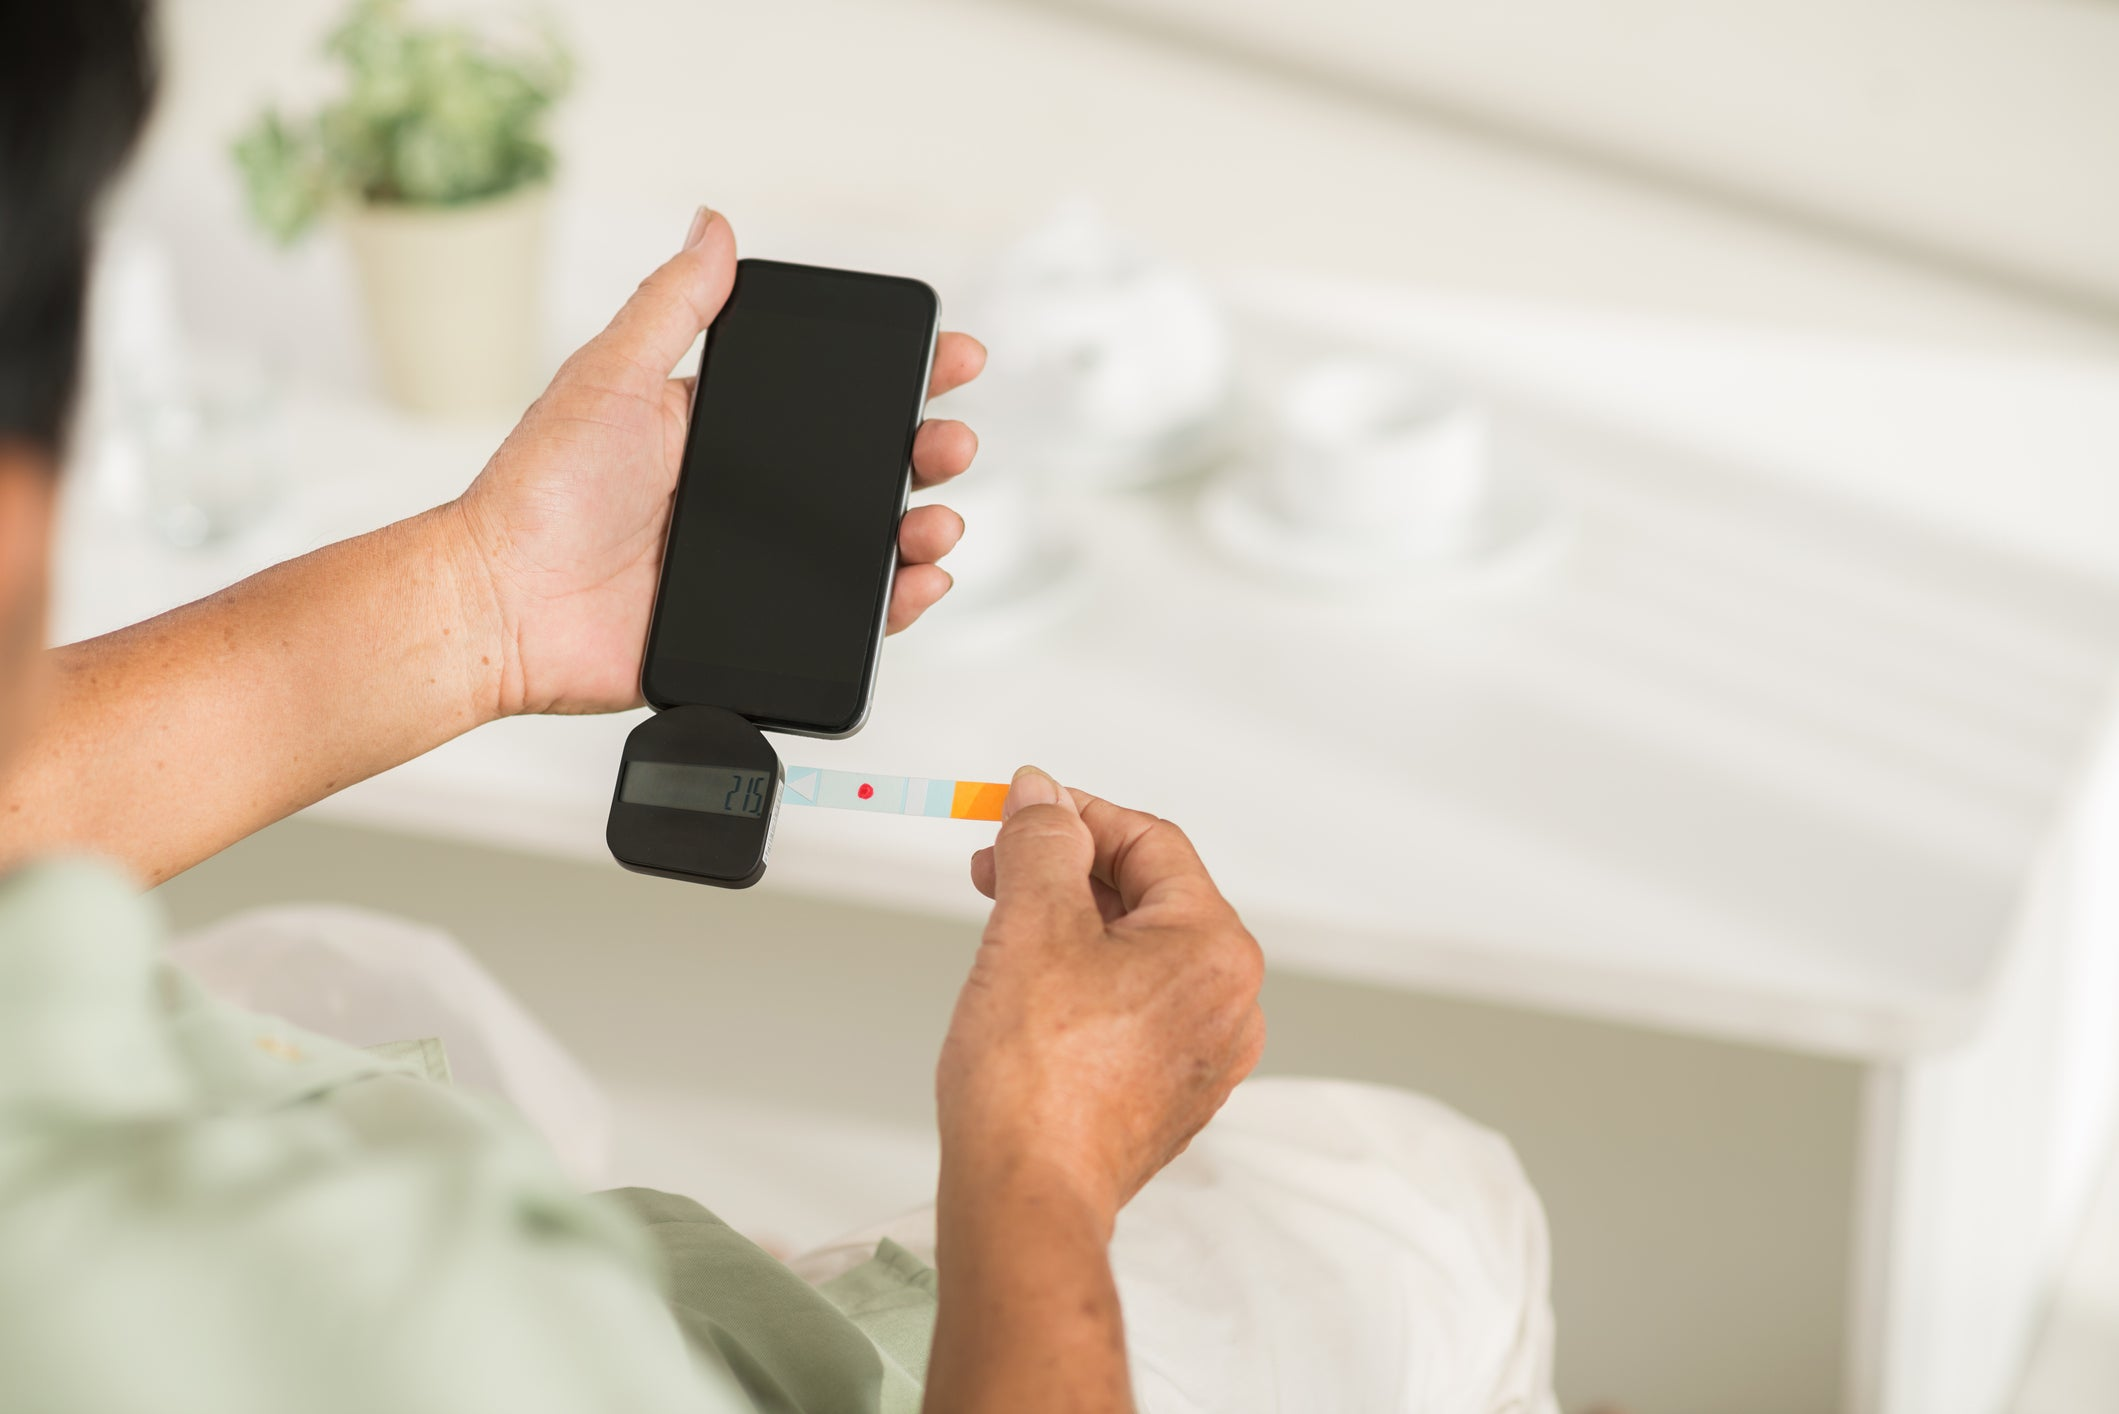 Is Tandem Diabetes Care Stock a Buy? - The Motley Fool